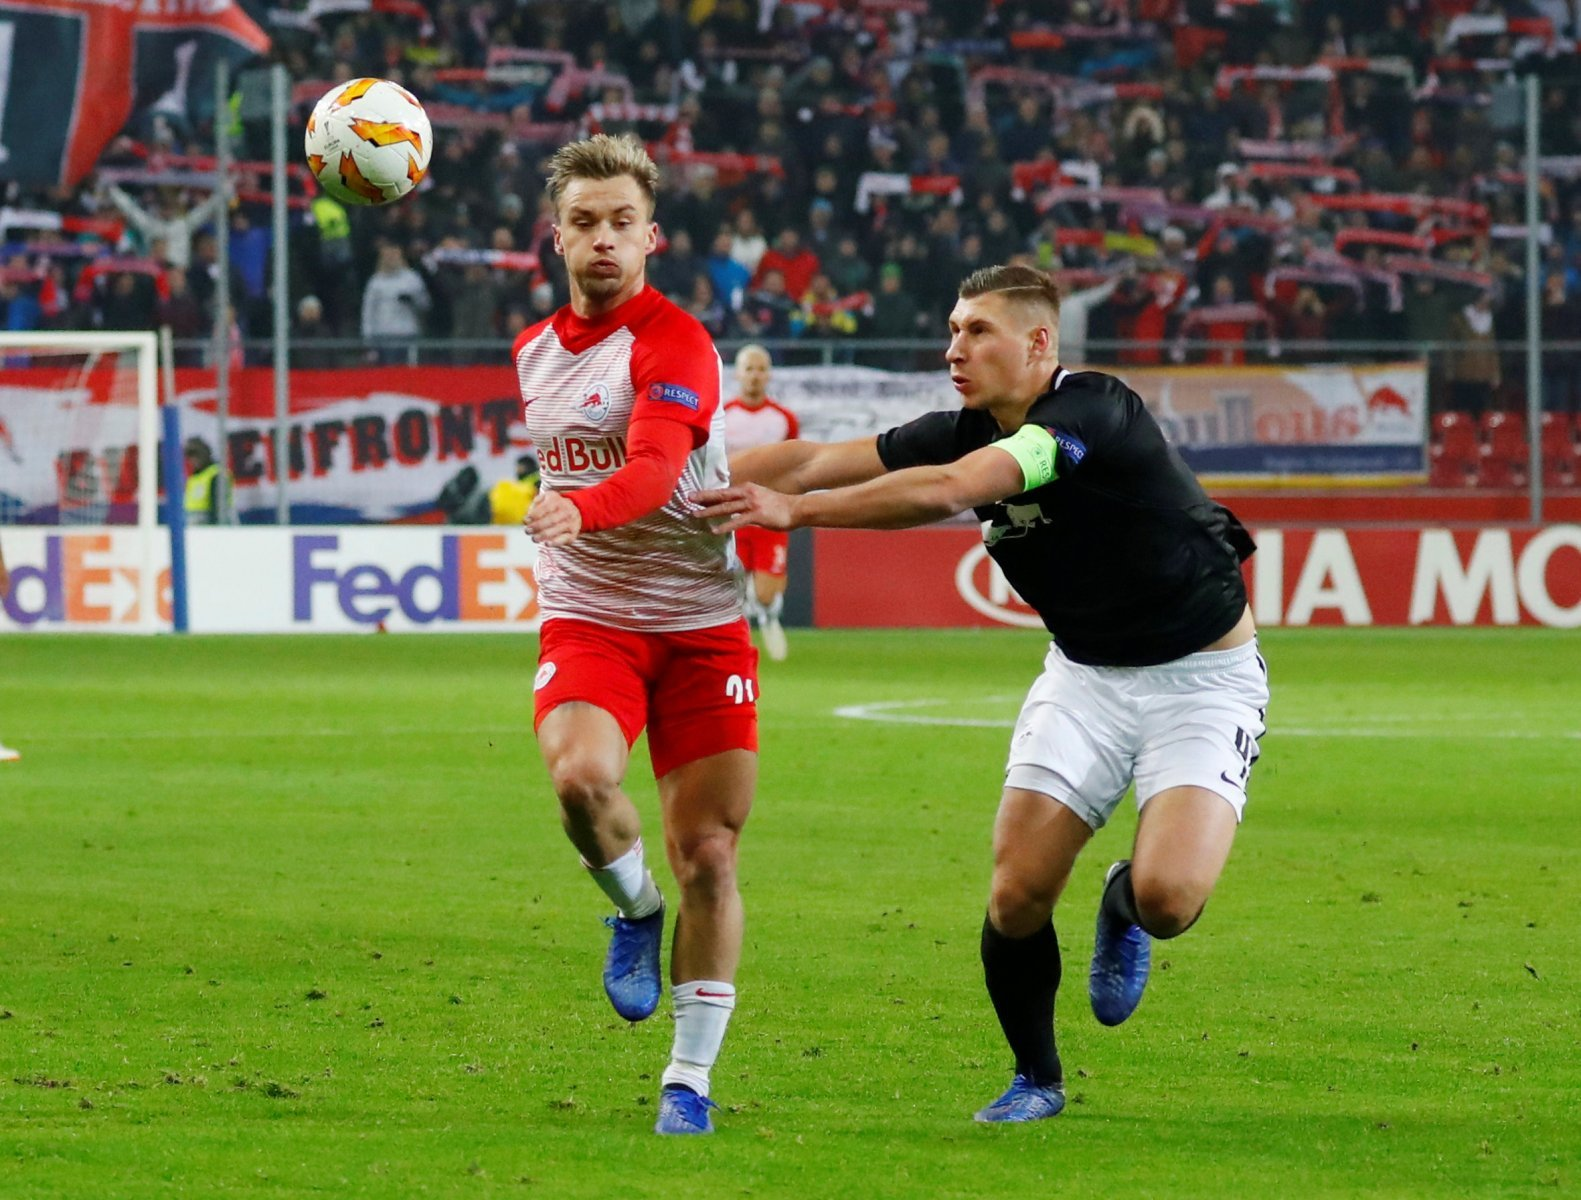 Willi Orban can bring leadership back to Arsenal